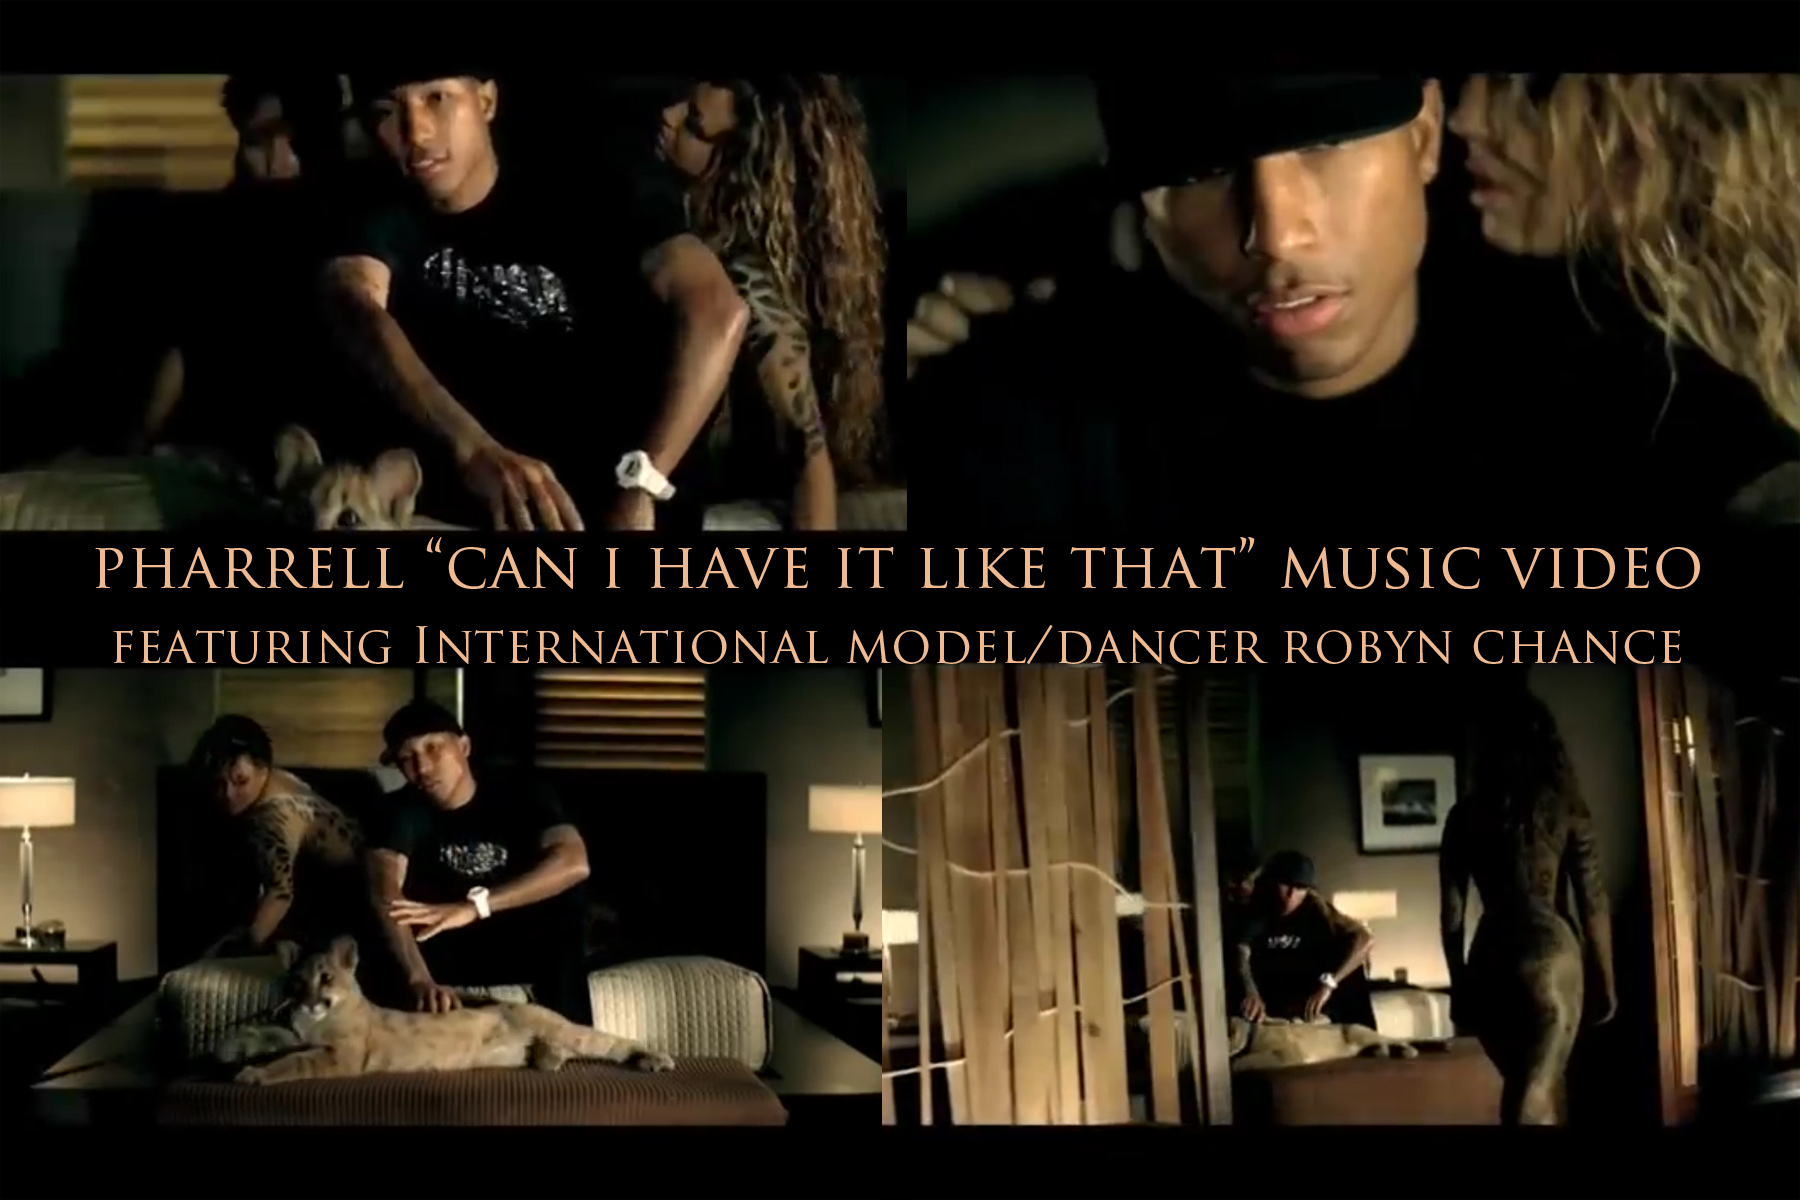 Pharrell_MusicVideoCollage_RobynChance (1).jpg